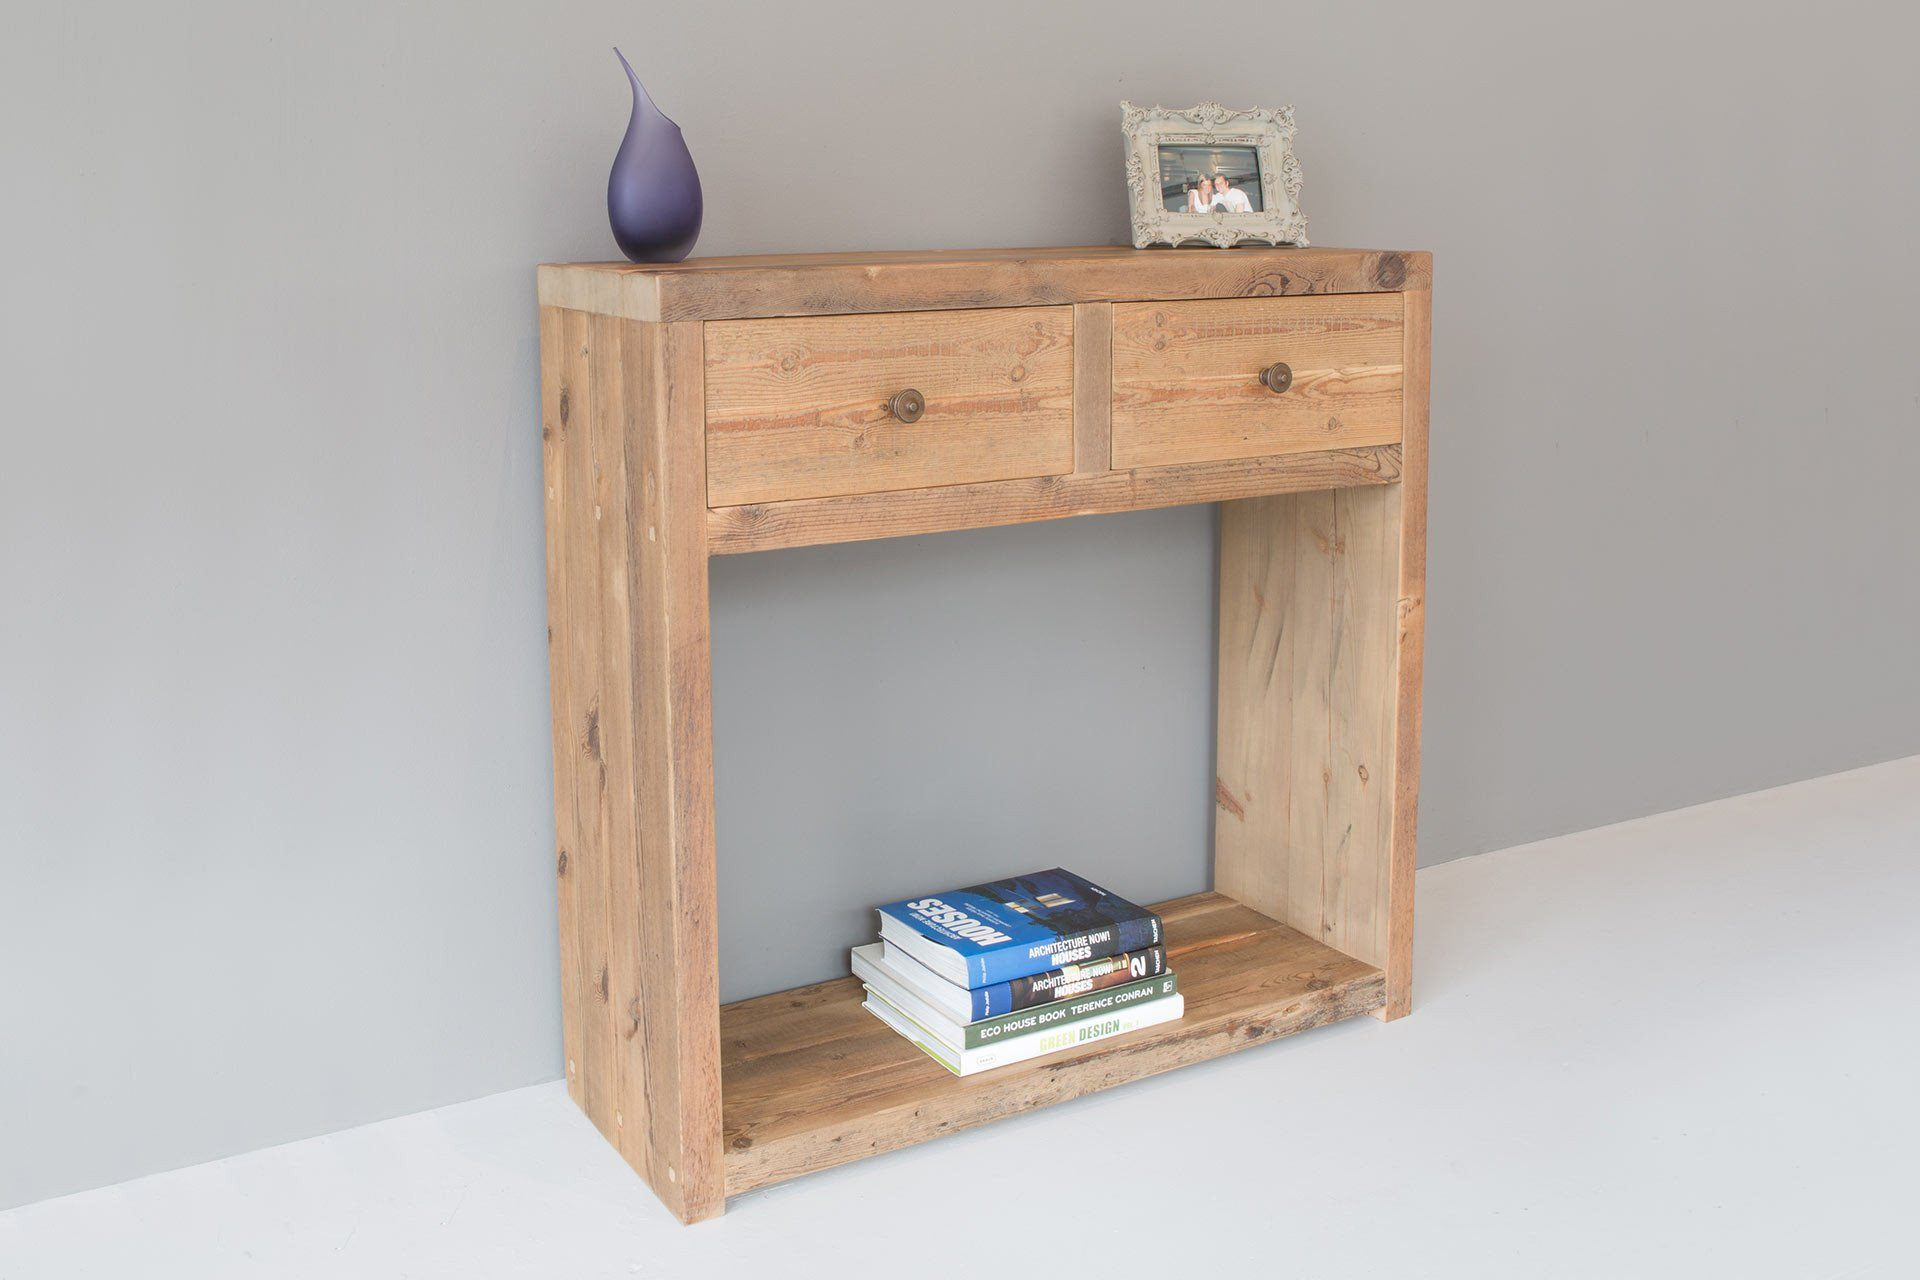 Natural 95.5cm Console Table With Antique Knobs